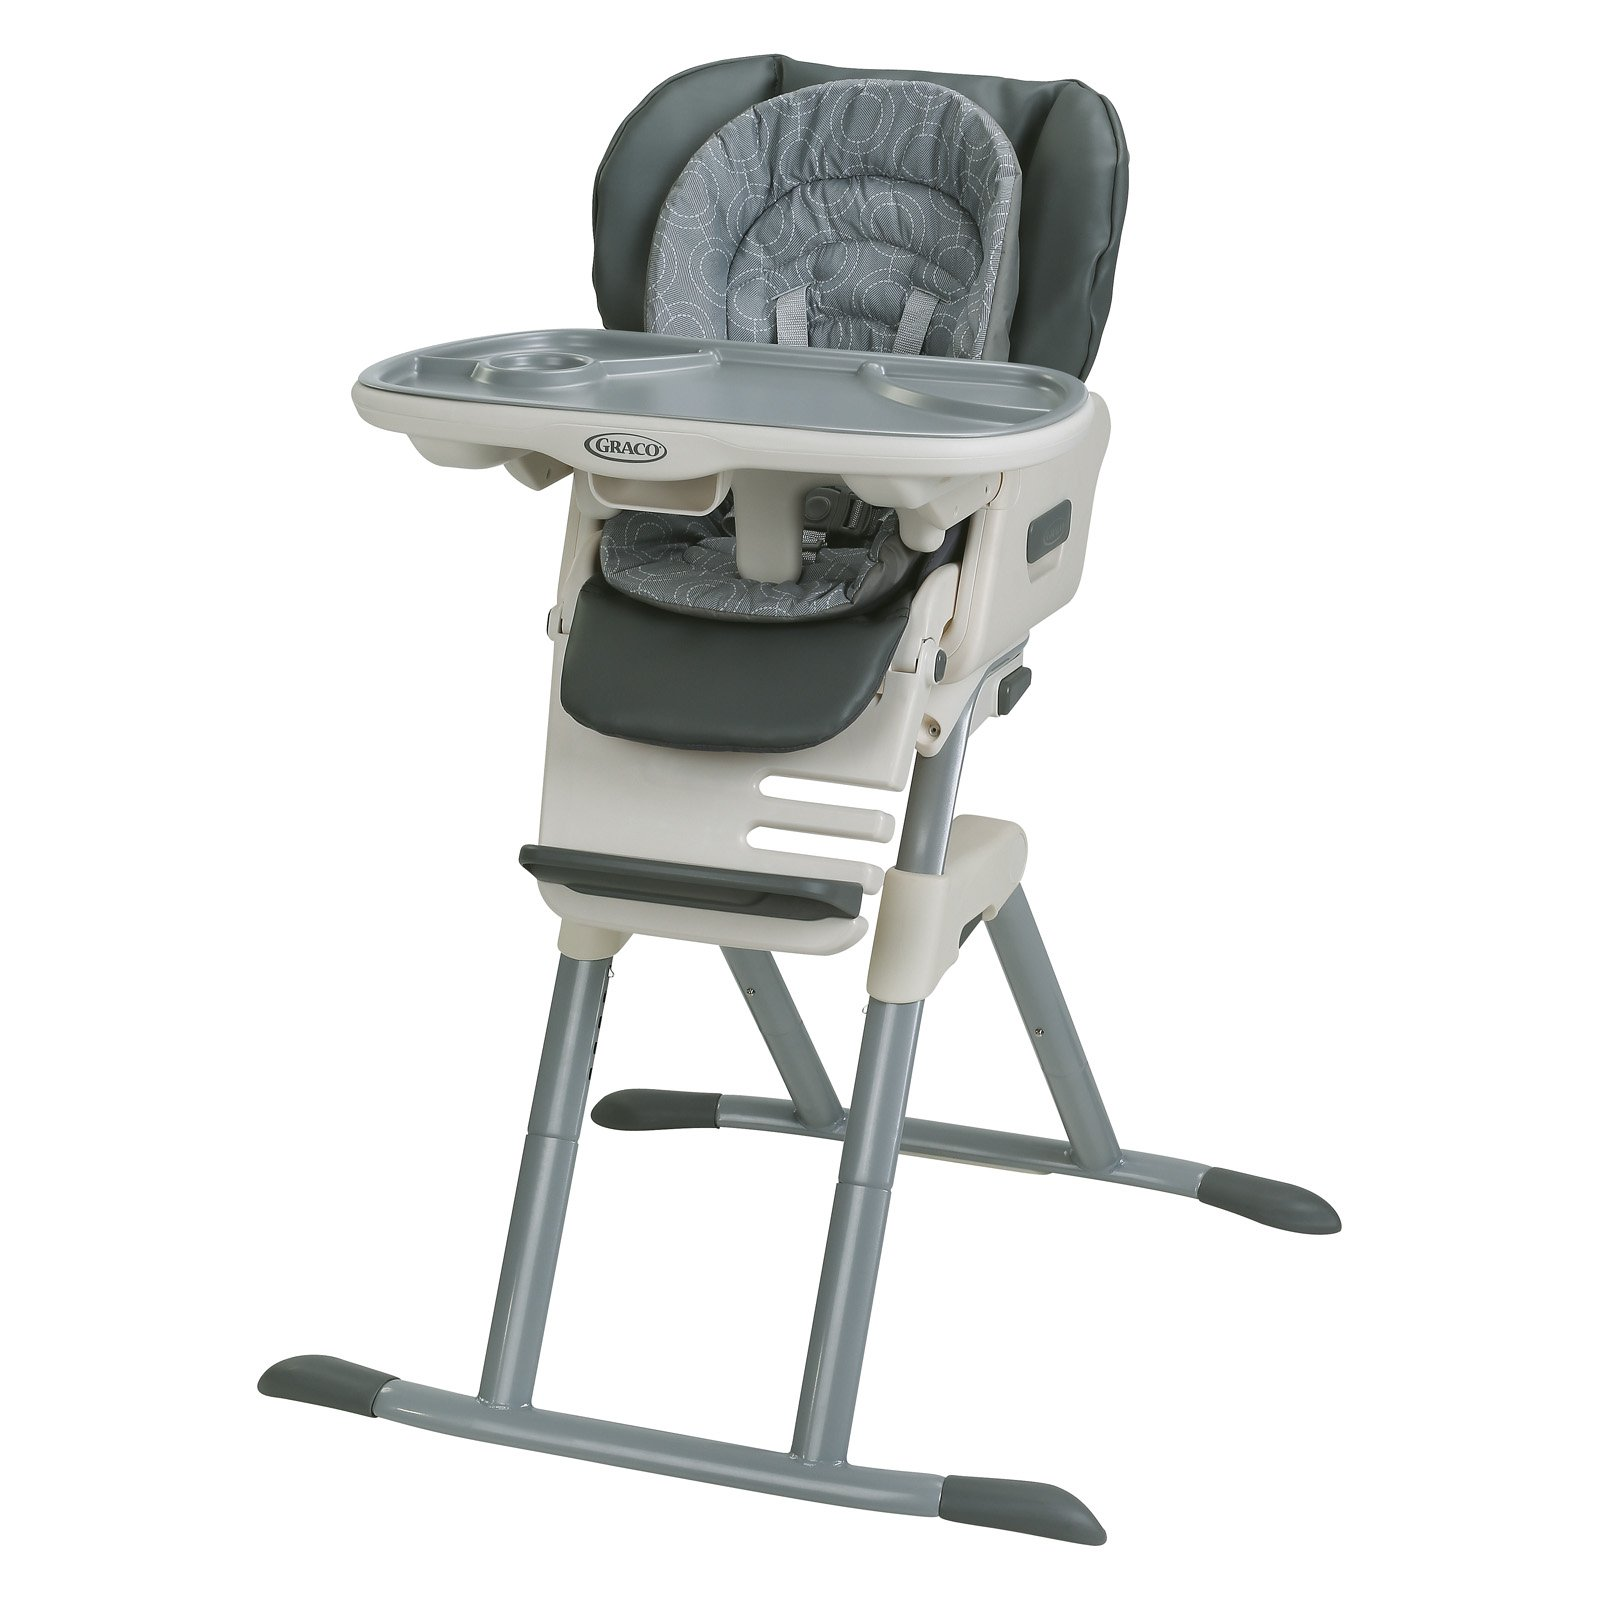 Graco SwiviSeat Highchair, Solar